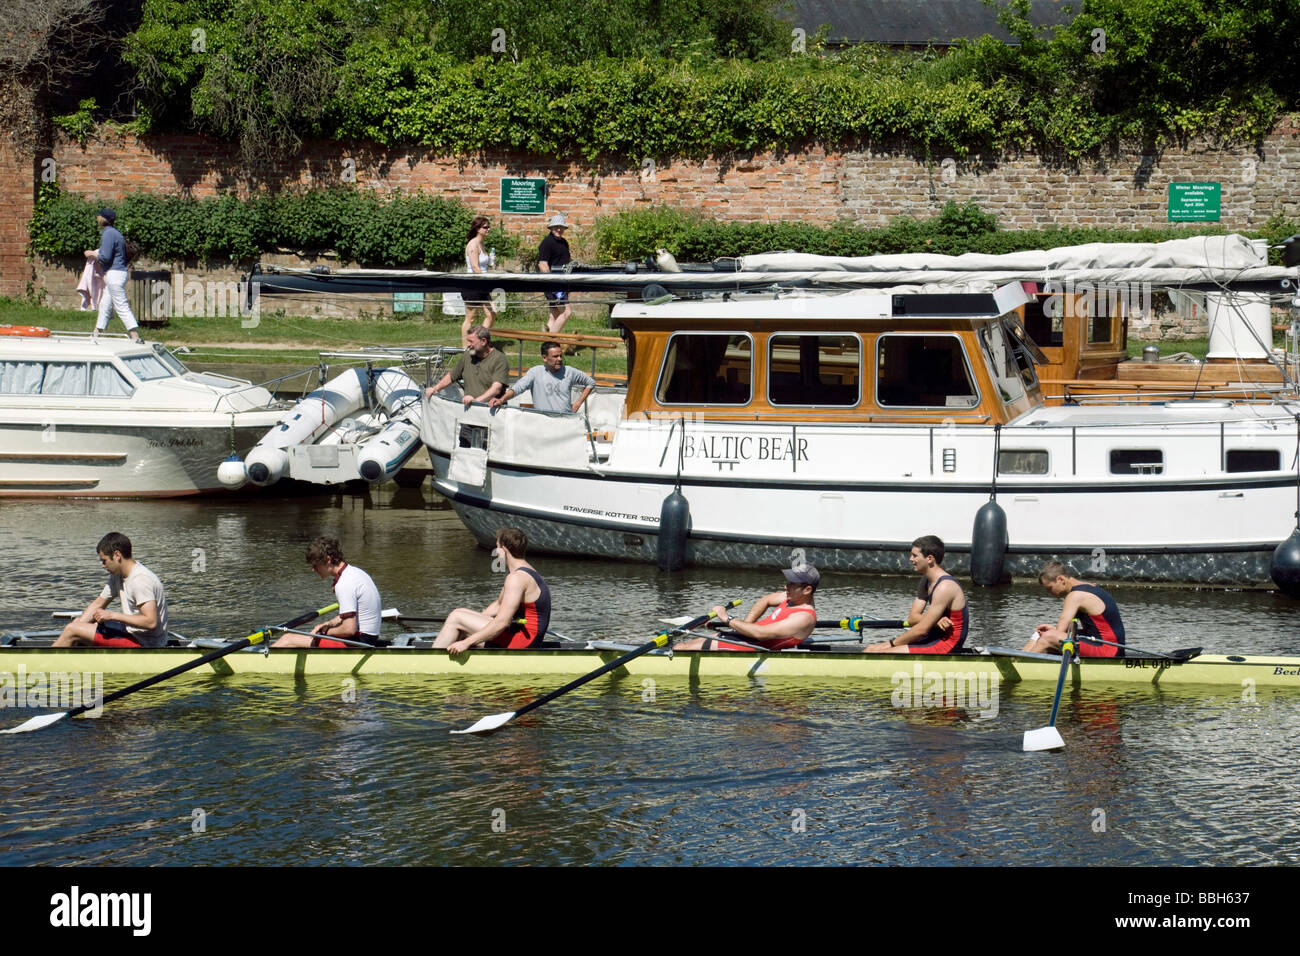 A rowing eight crew on the river Thames at  Wallingford, Oxfordshire, UK - Stock Image